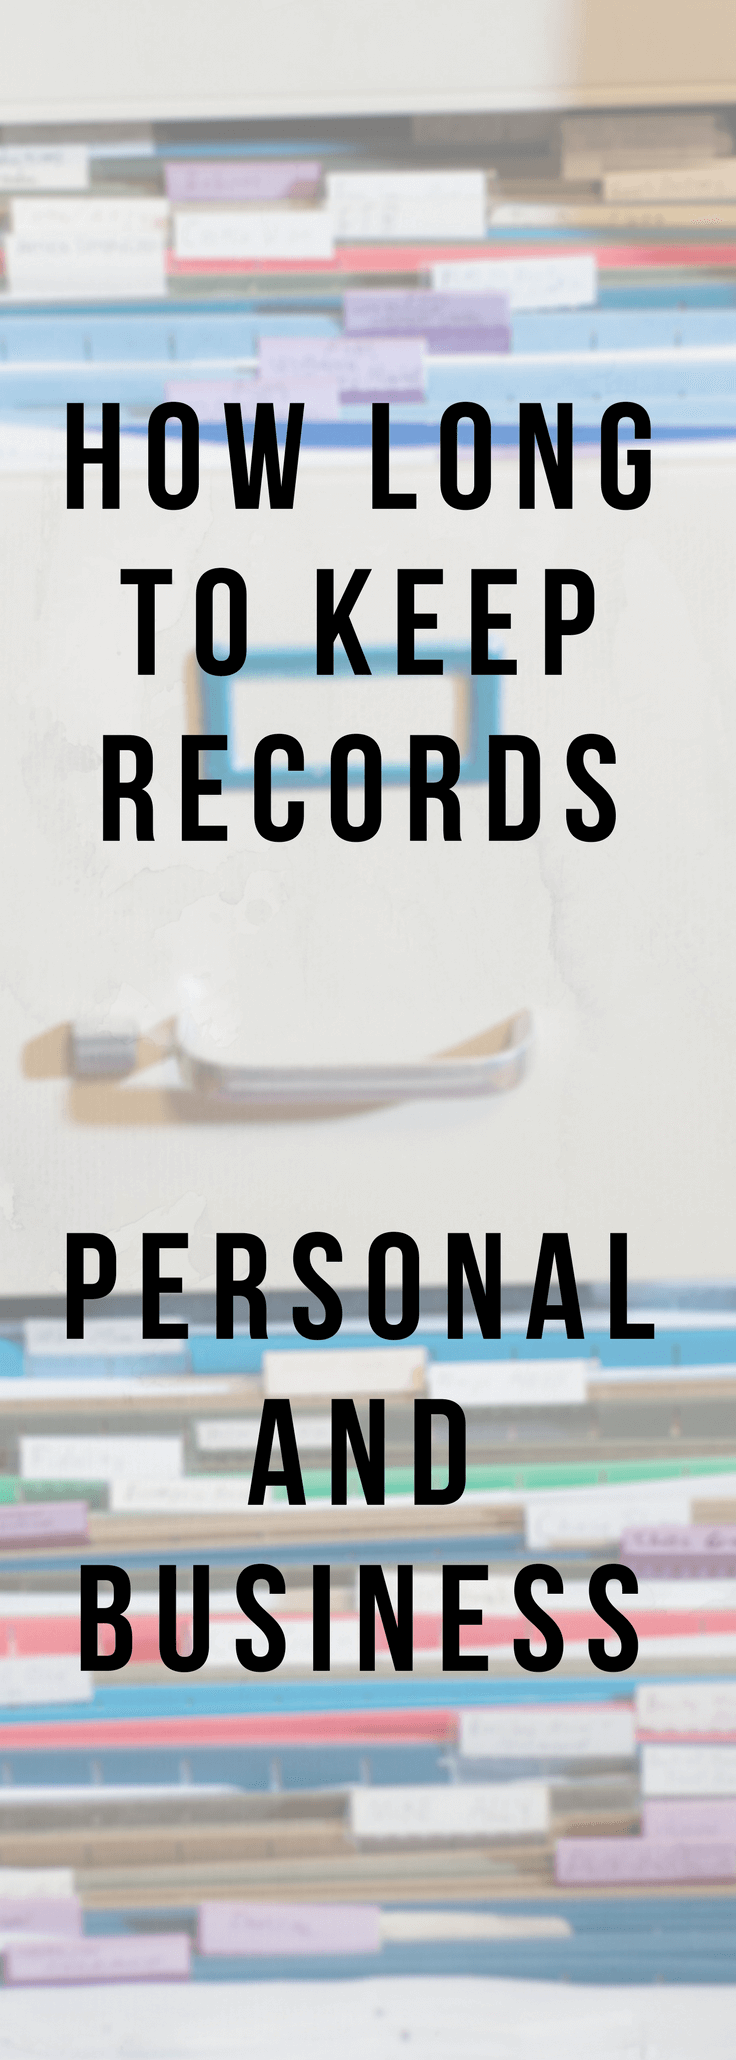 How Long To Keep Records - Personal and Business Pinterest